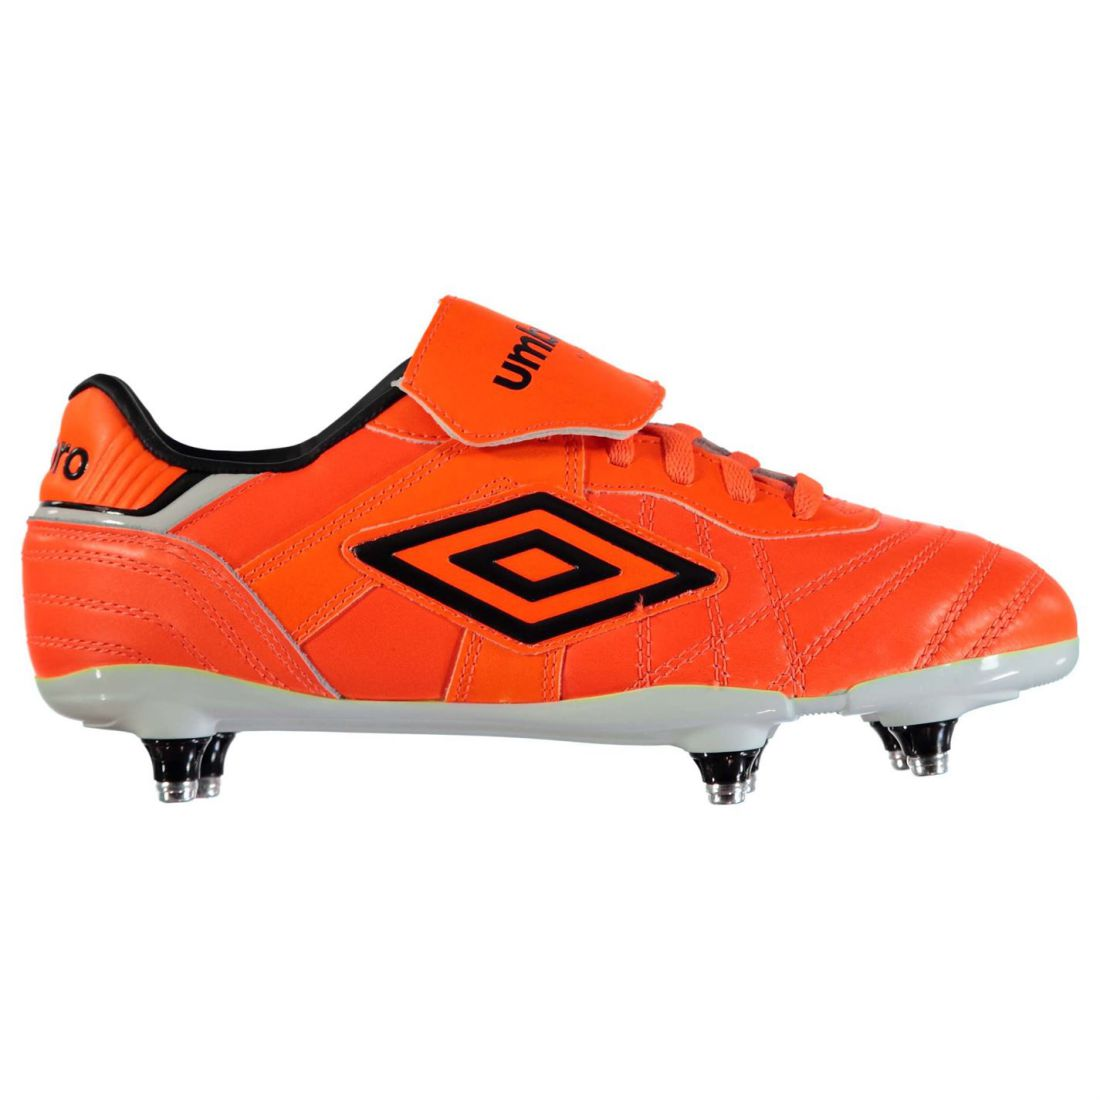 Umbro Men Gents Speciali Eternal Premier SG Football Boots Cleats Laces Fastened